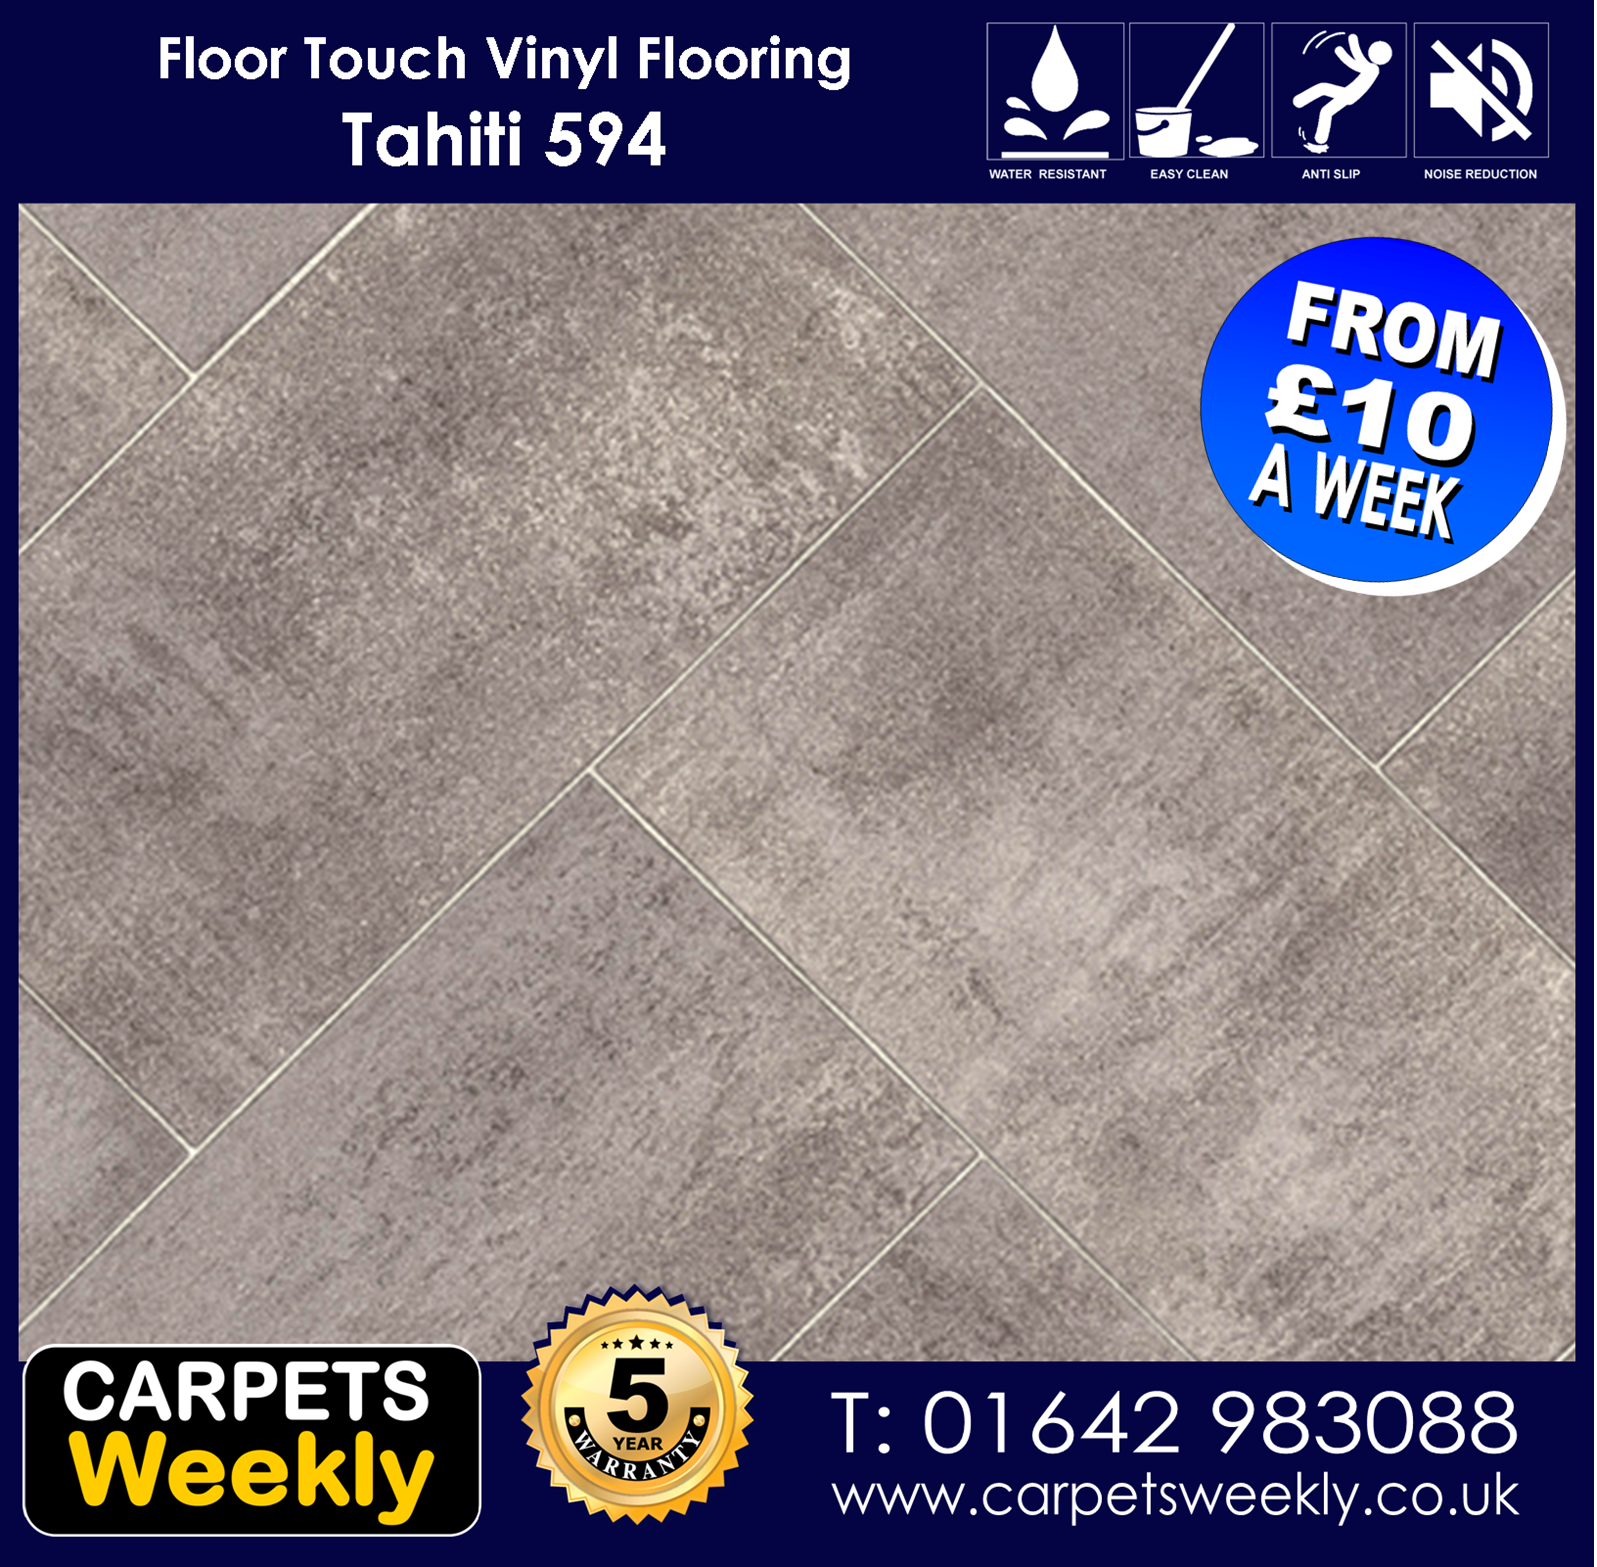 Tahiti 594 Vinyl Flooring by Floor Touch from Carpets Weekly